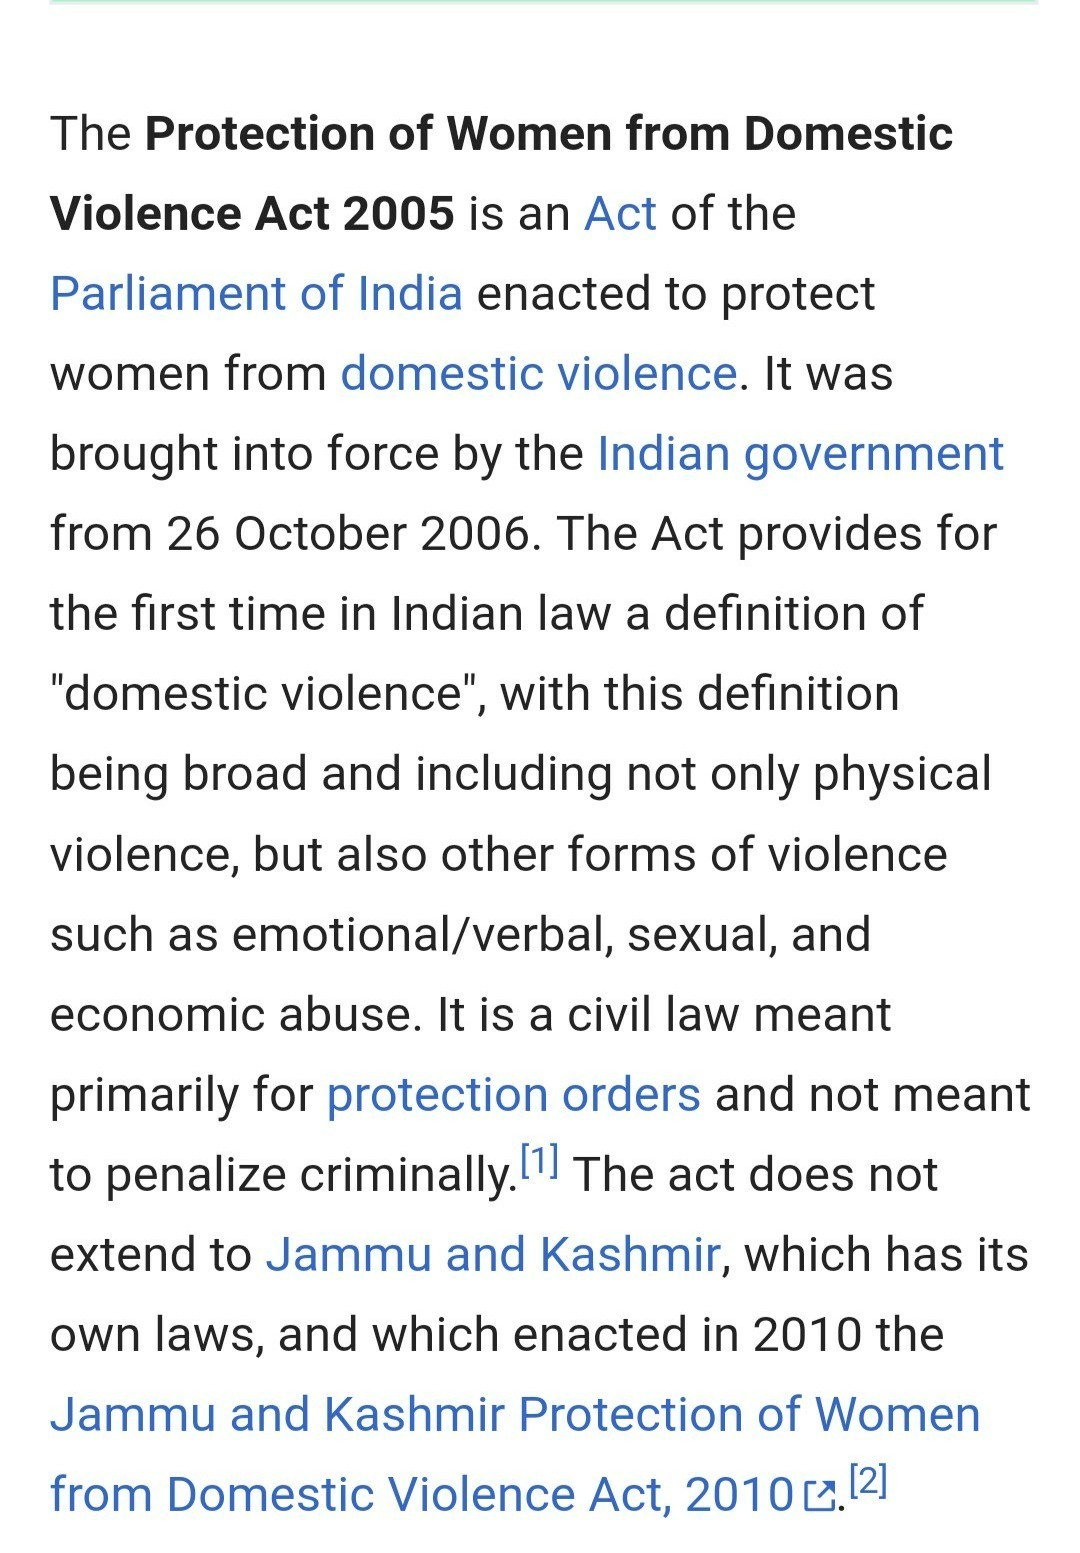 the protection of women from domestic violence act, 2005 (summary